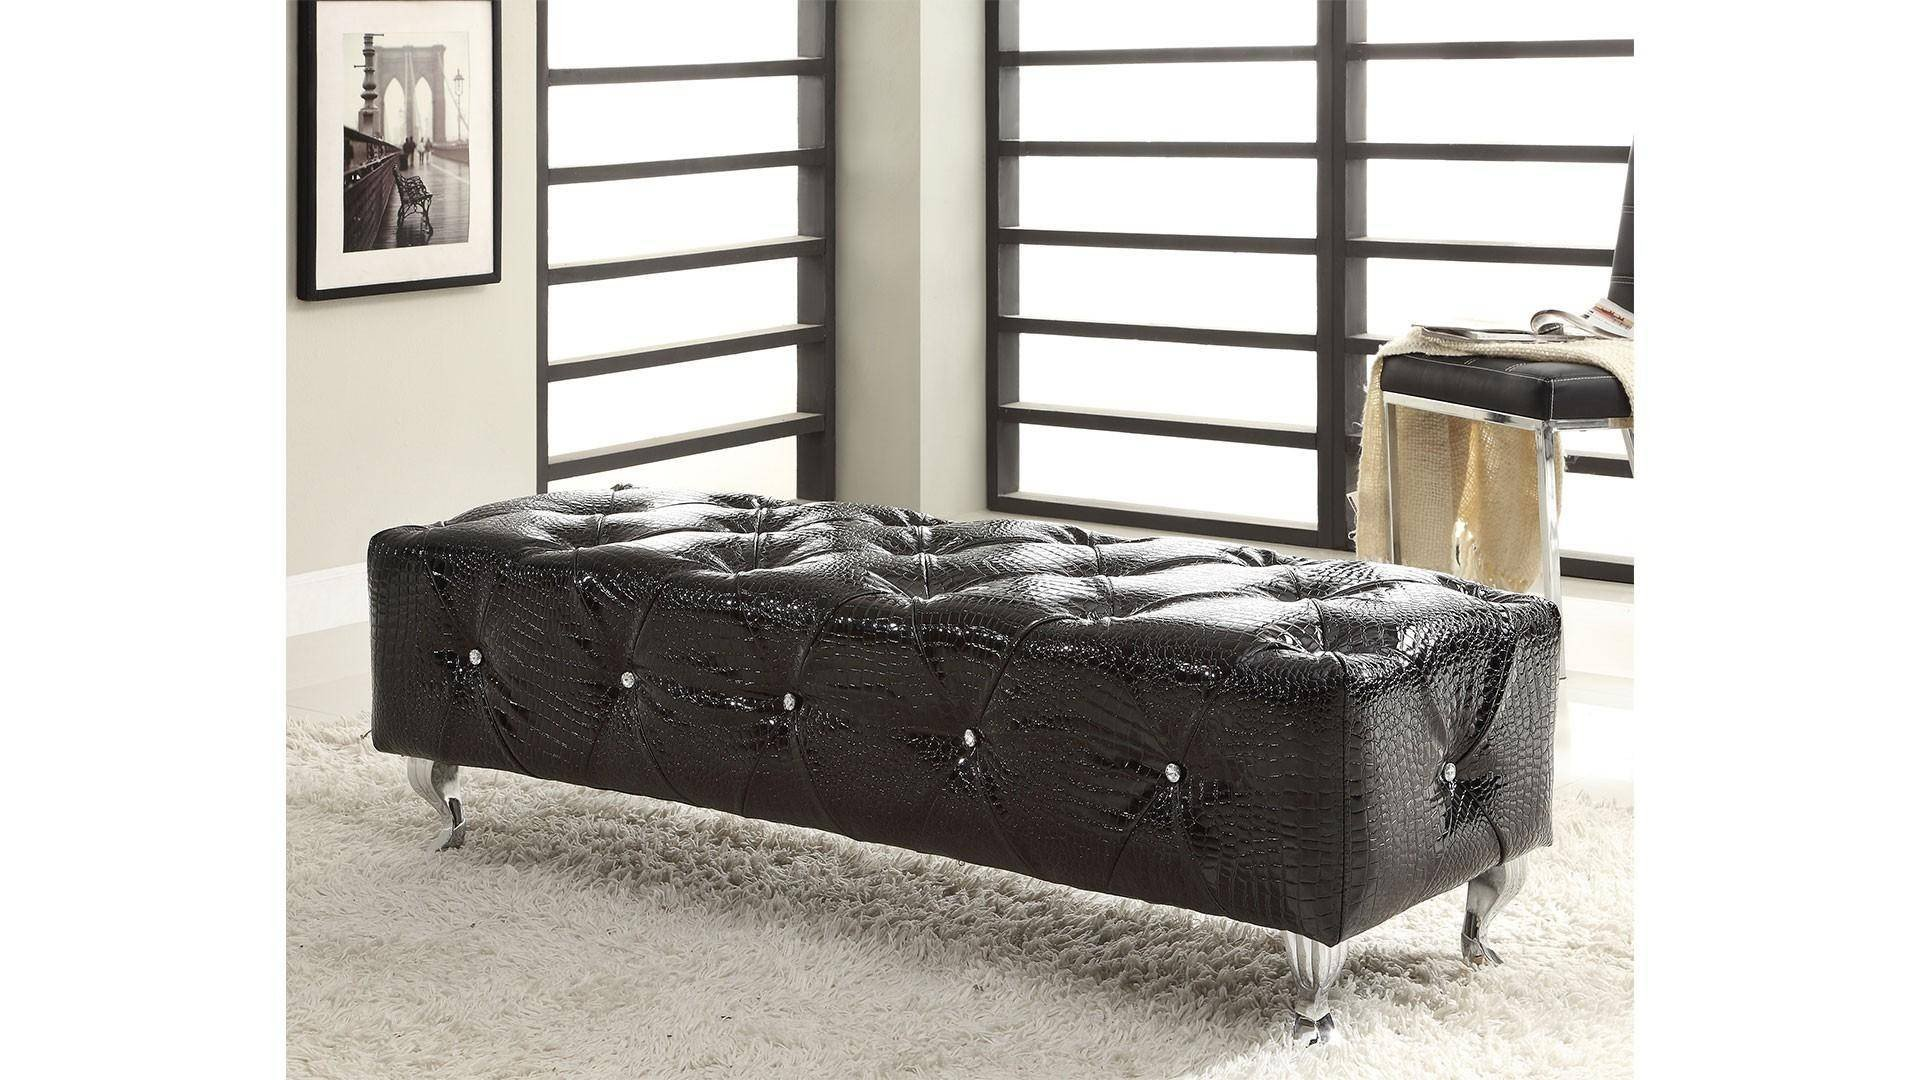 Black Bedroom Set Queen New at Home Michelle King Platform Bedroom Set 2 Pcs In Black Leather